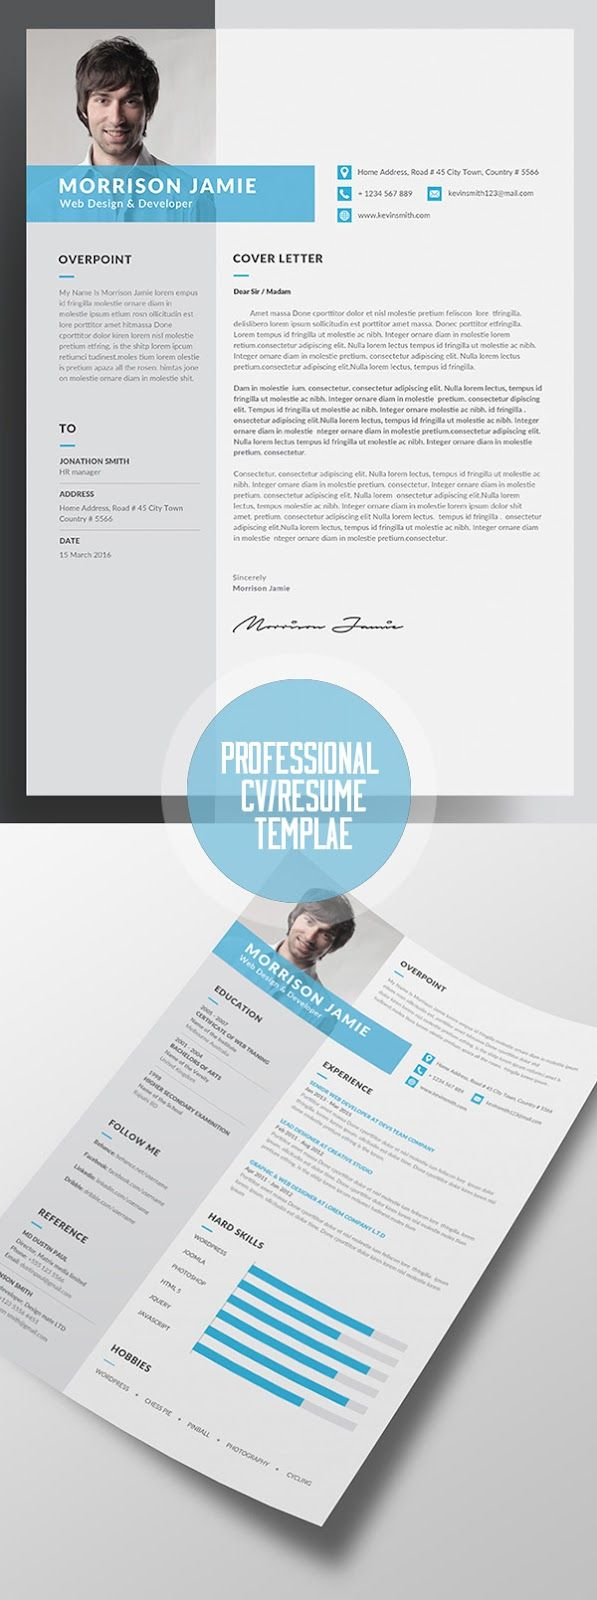 academic resume builder Resume Academic Resume